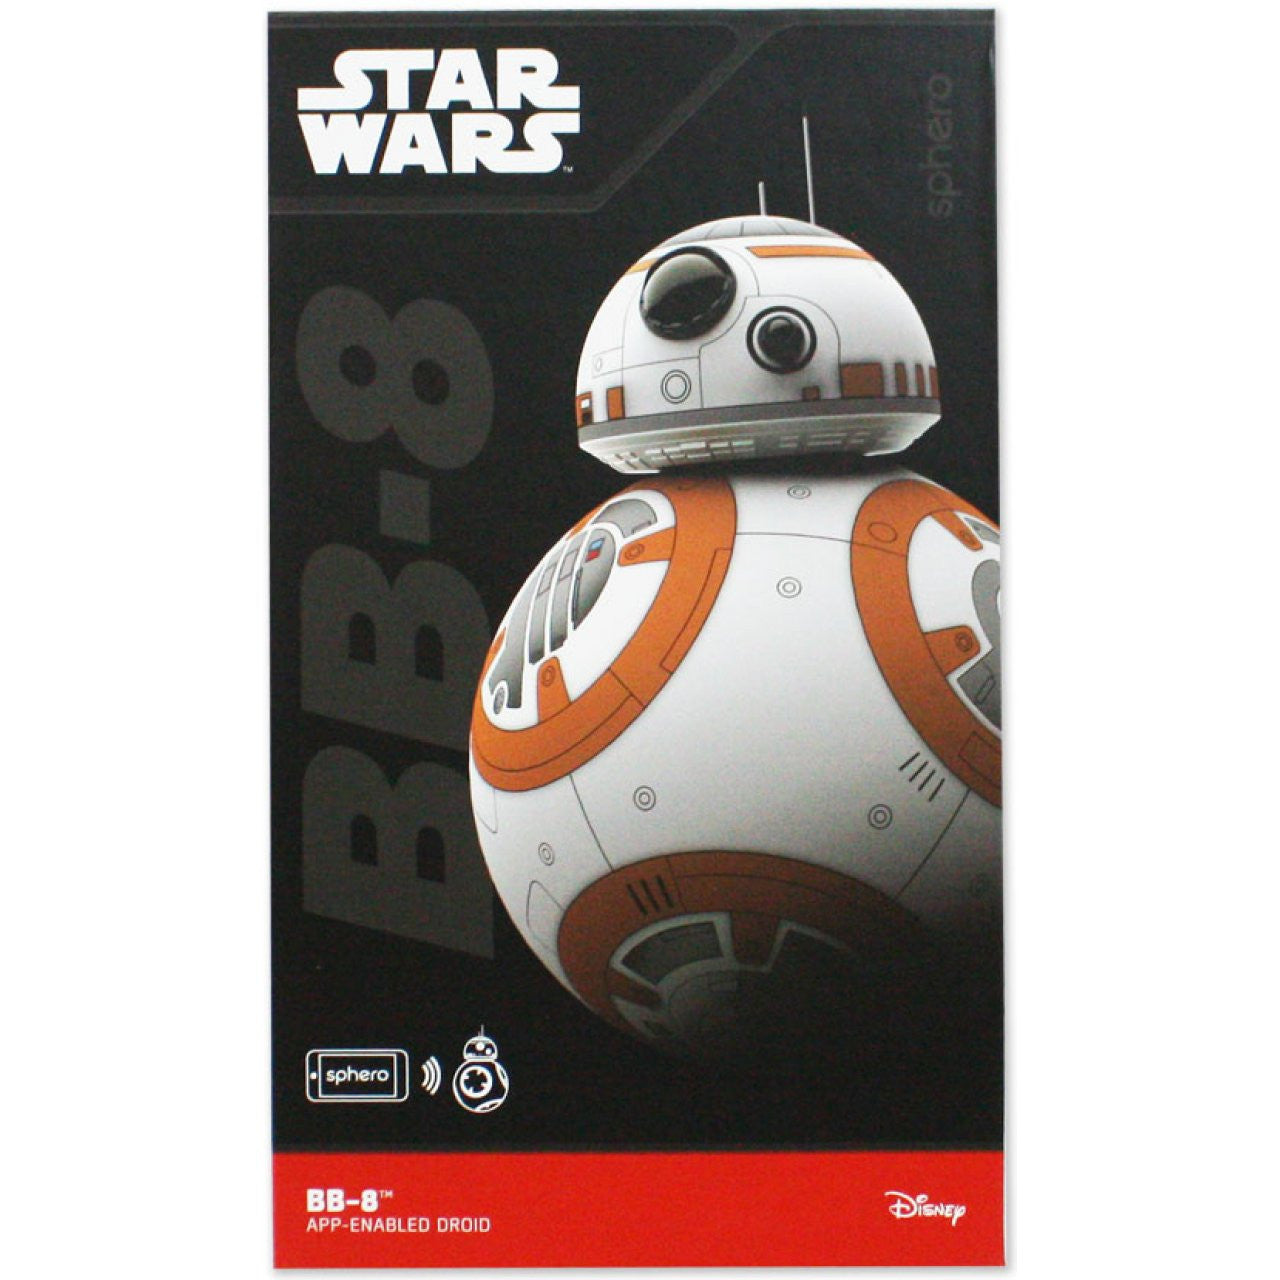 Sphero Star Wars BB-8 App-Enabled Droid with FREE Force Band*